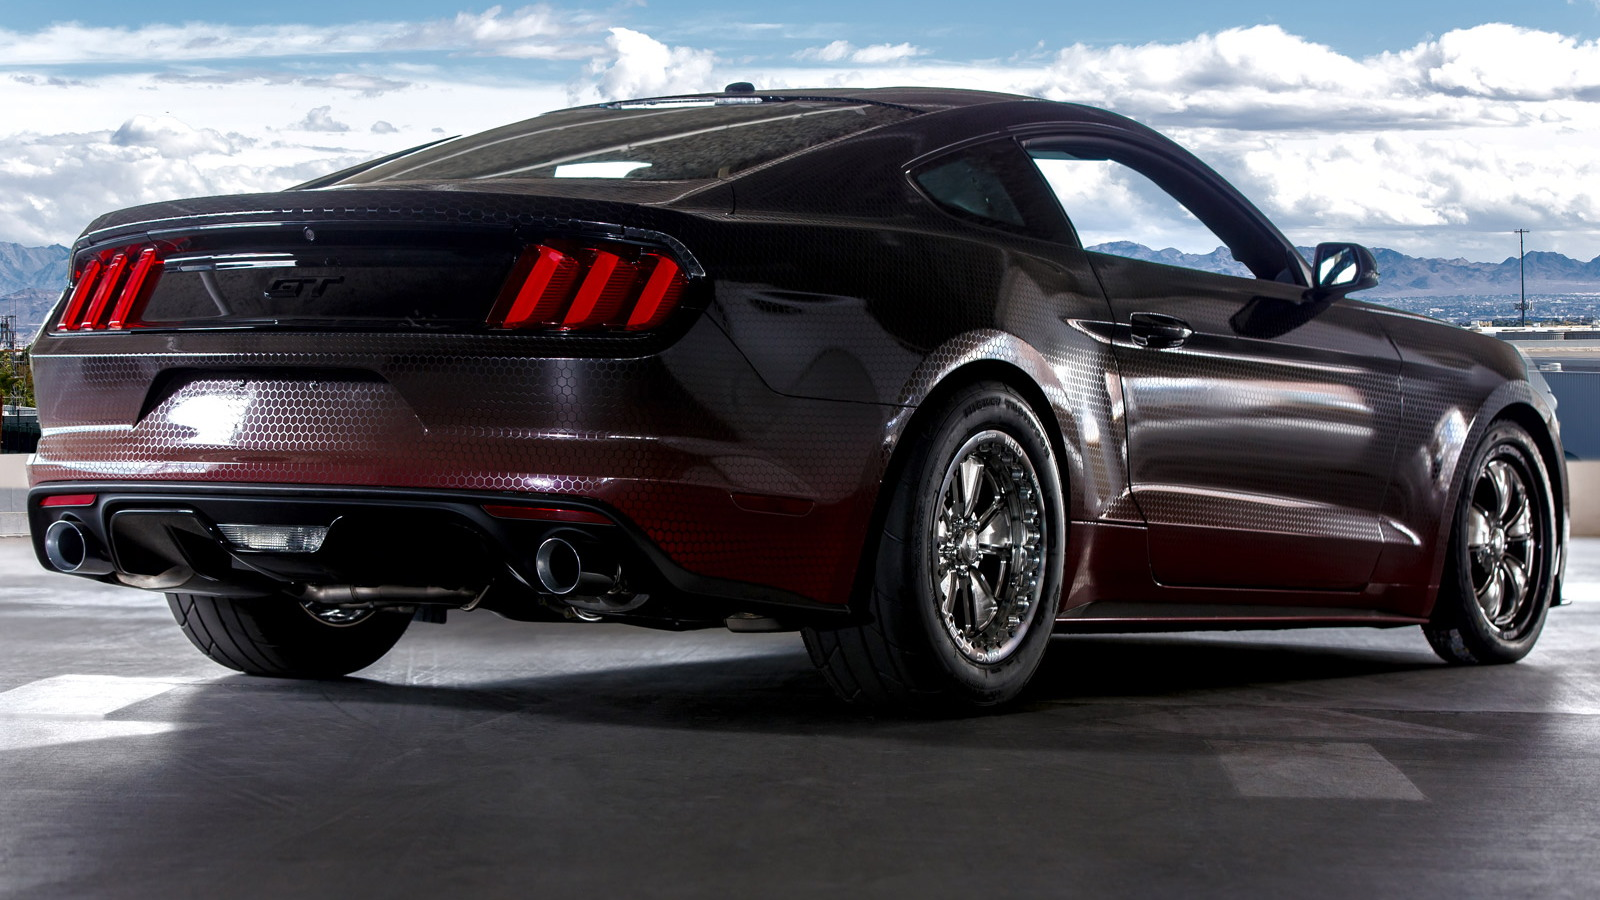 2015 Ford Mustang King Cobra by Ford Racing, 2014 SEMA show